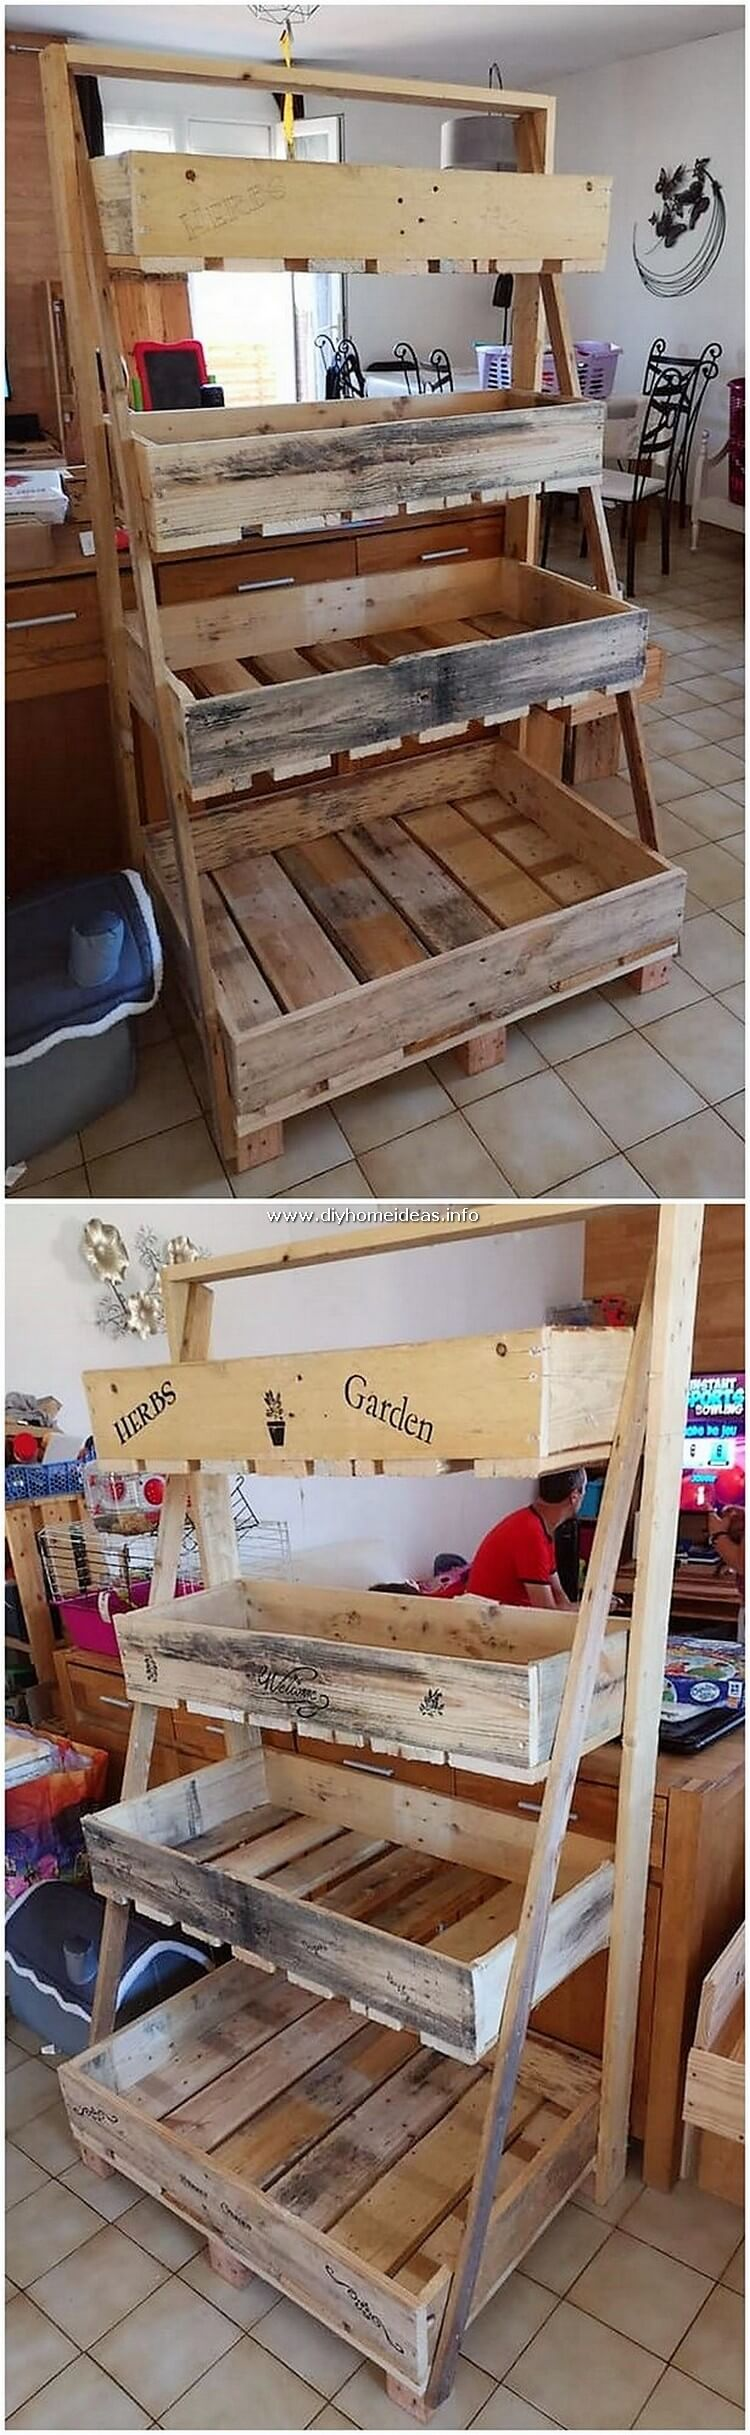 Pallet Wooden Shelving Stand